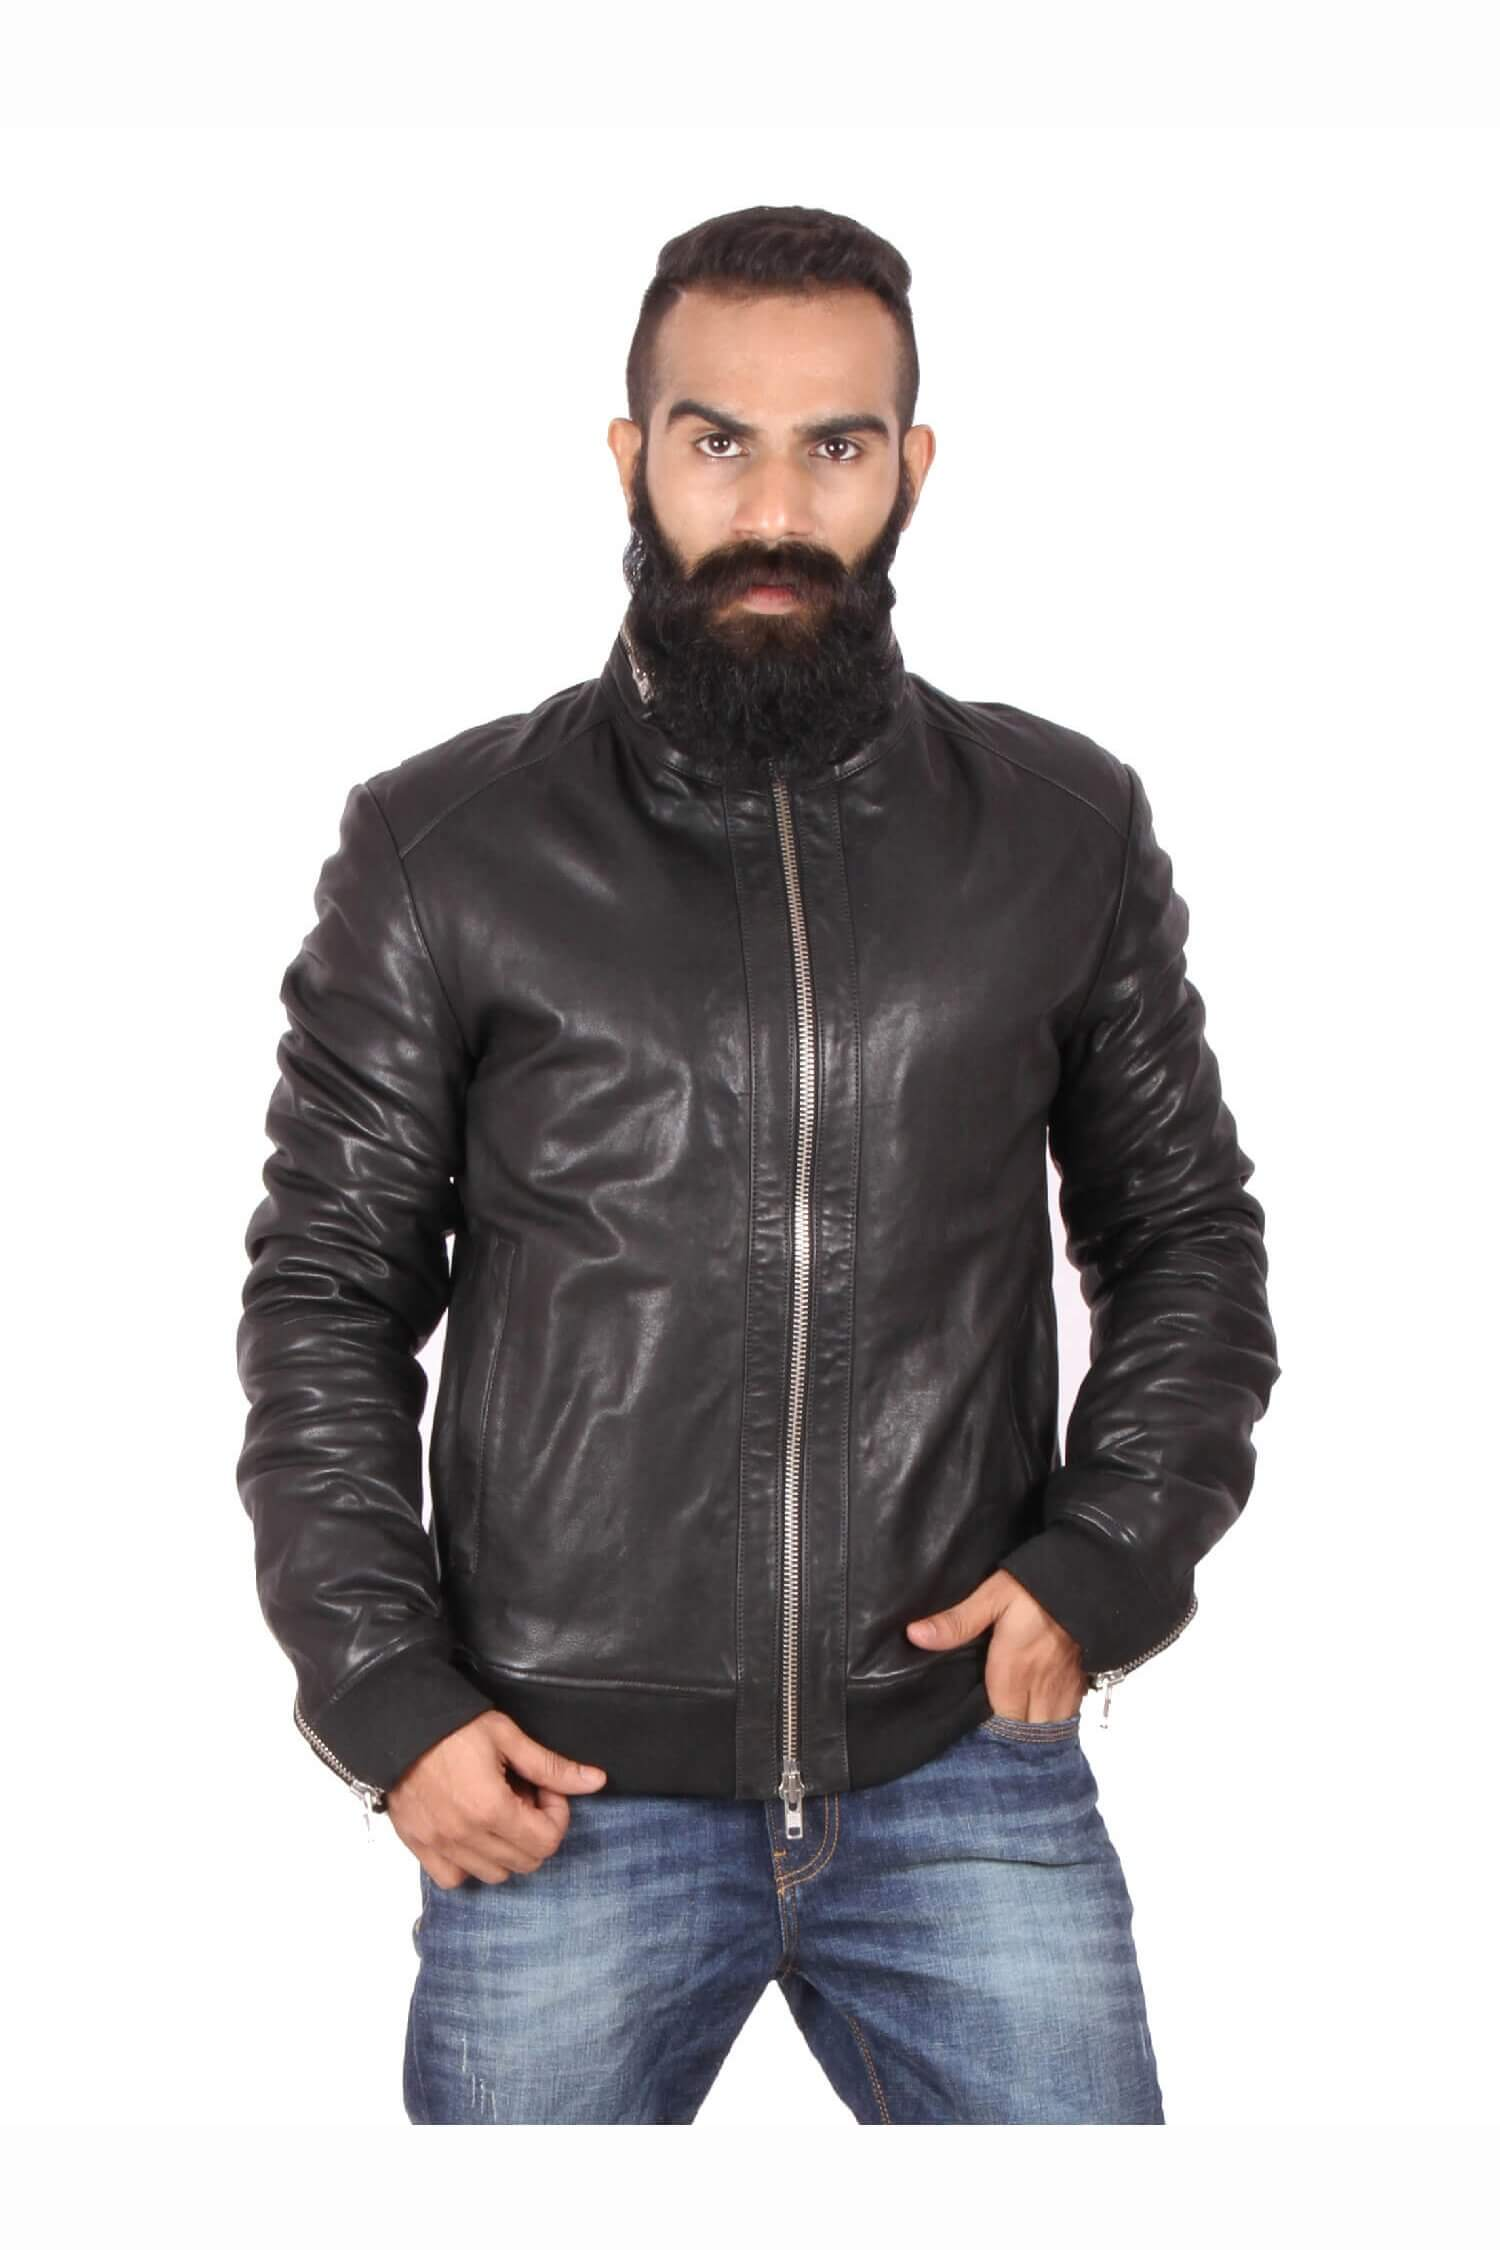 Theo&Ash - Buy Stylish Black Leather Jacket for Men Online in ...